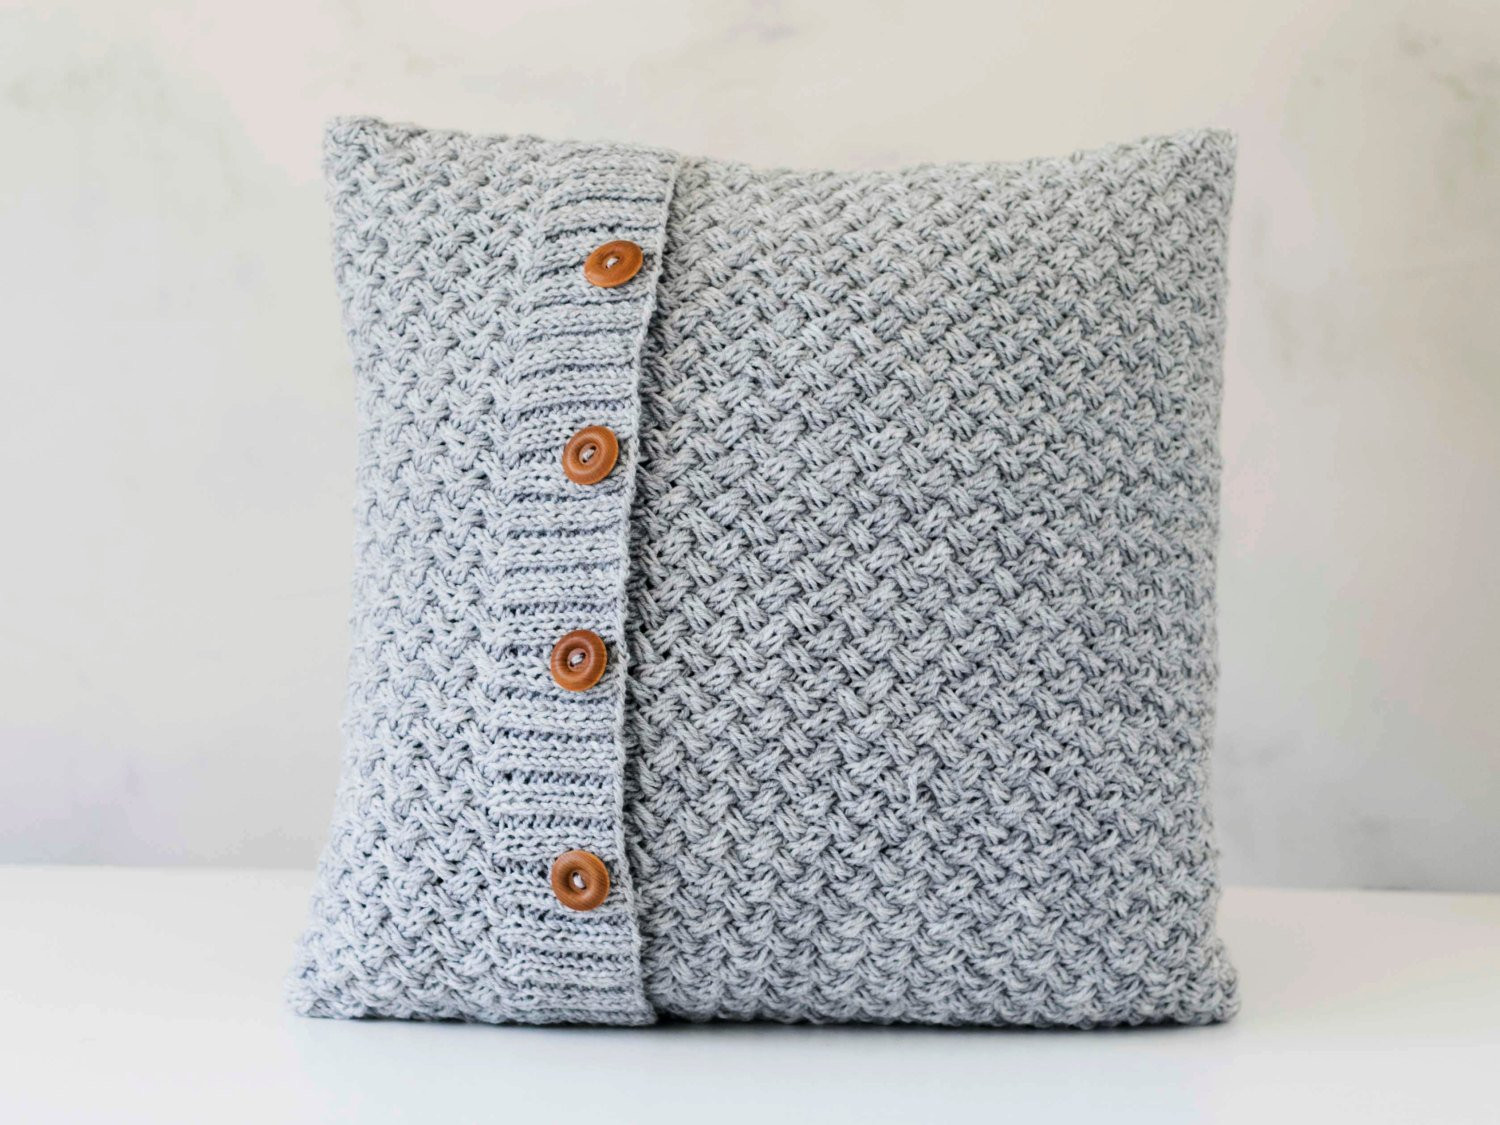 Awesome Knit Pillow Grey Knitted Chunky Pillow Scandinavian Style Knit Pillow Cover Pattern Of Amazing 45 Pics Knit Pillow Cover Pattern